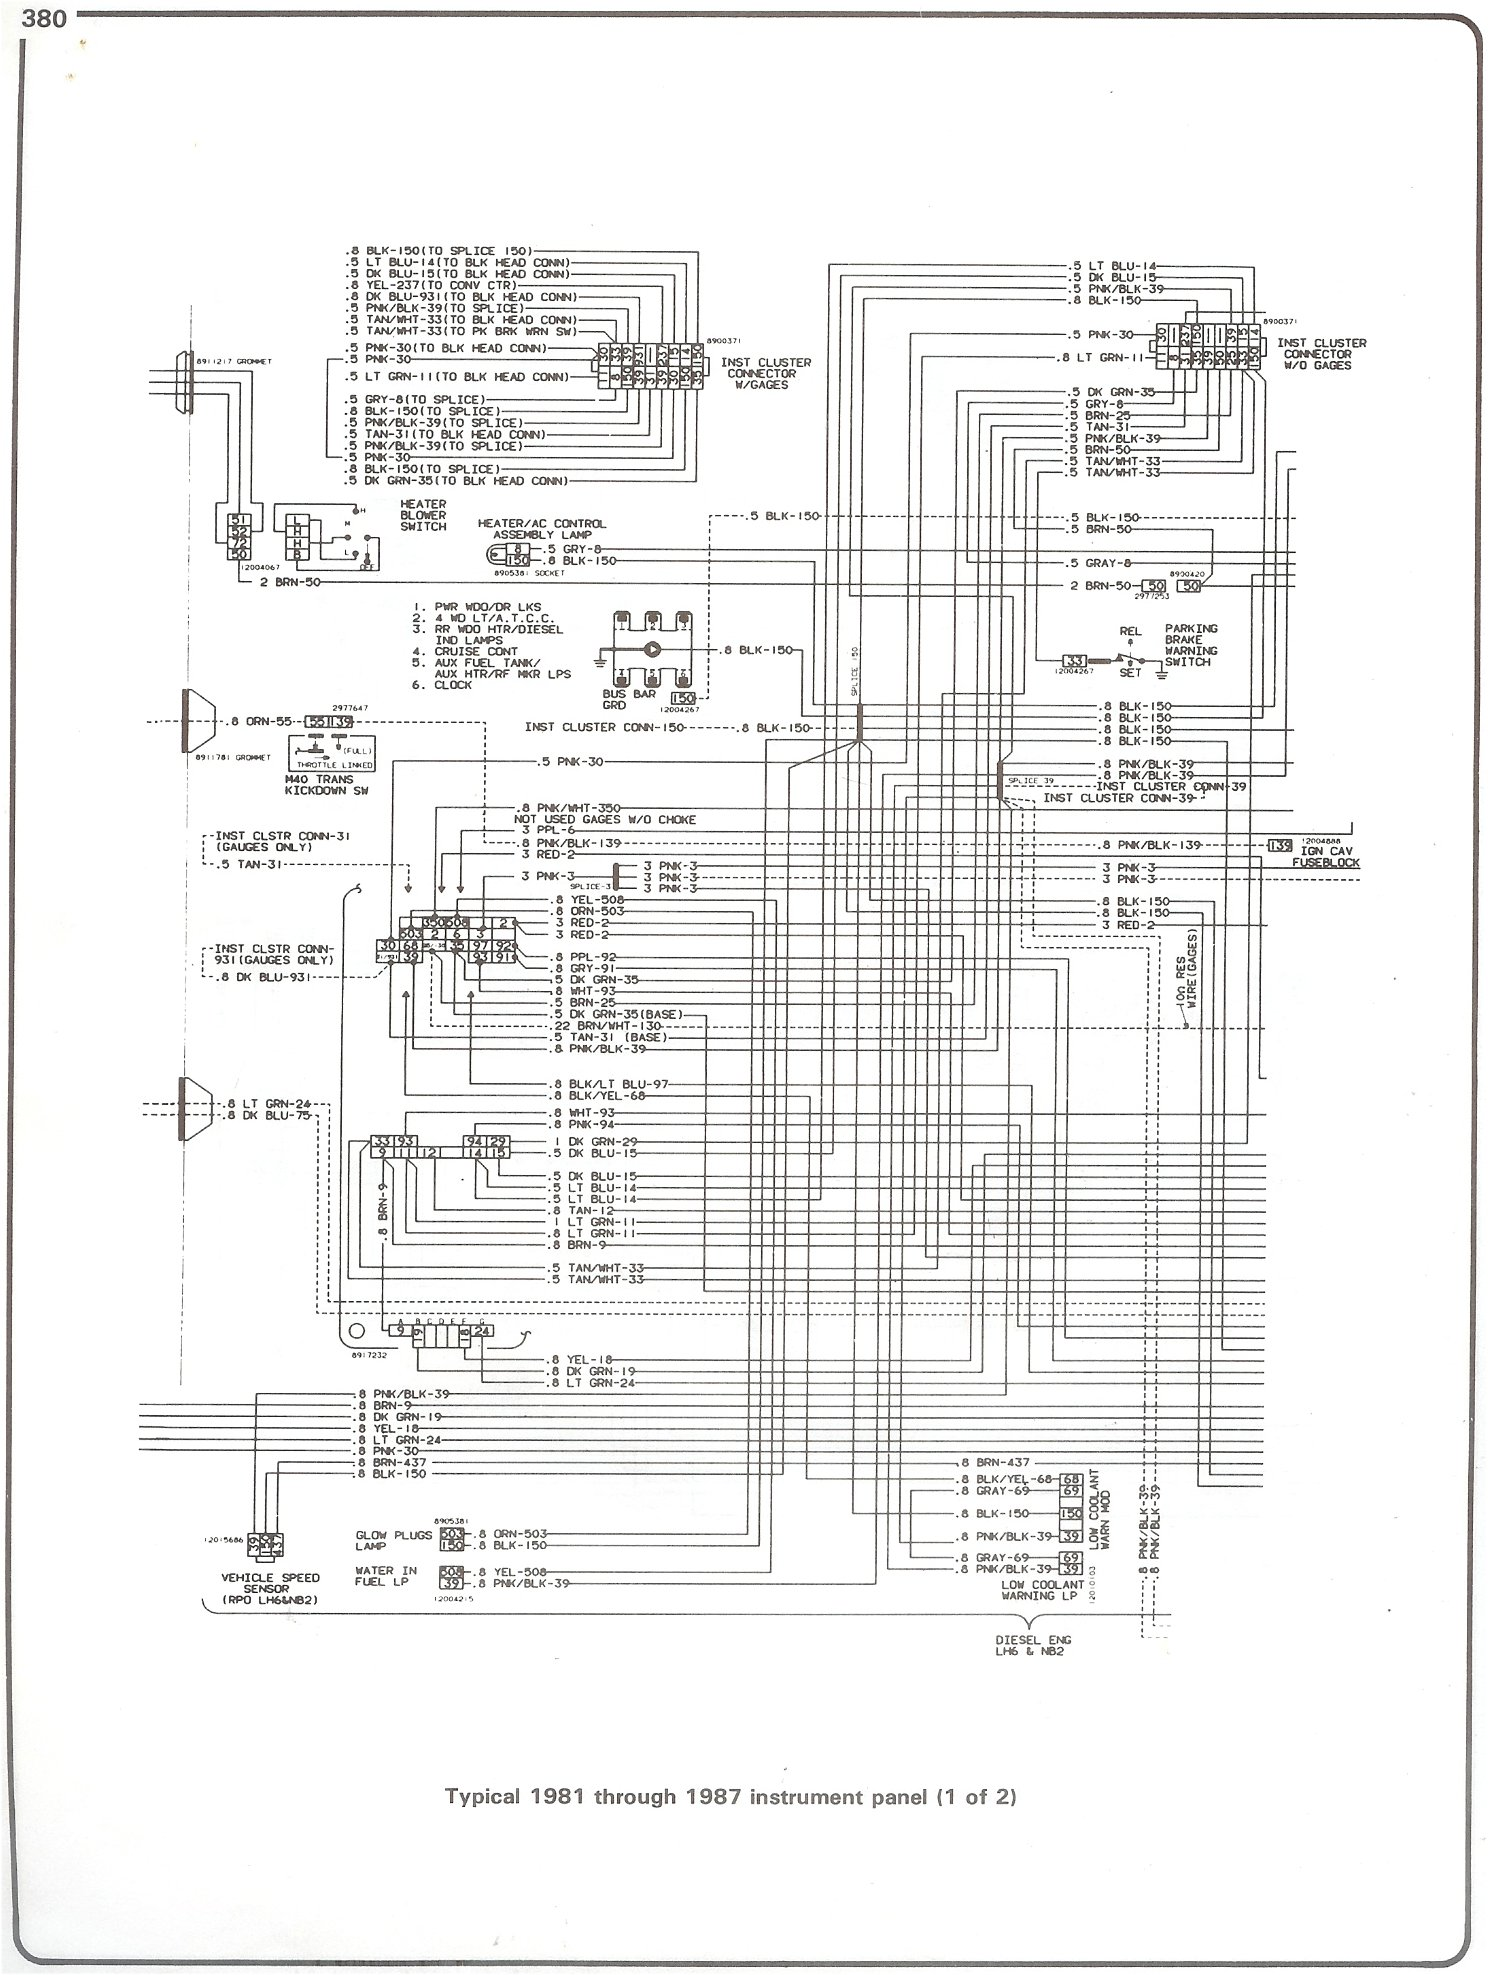 gmc w4000 wiring diagram gmc wiring diagrams online gmc w wiring diagram 1981 gm fuse box diagram chrysler sebring l fi dohc cyl repair